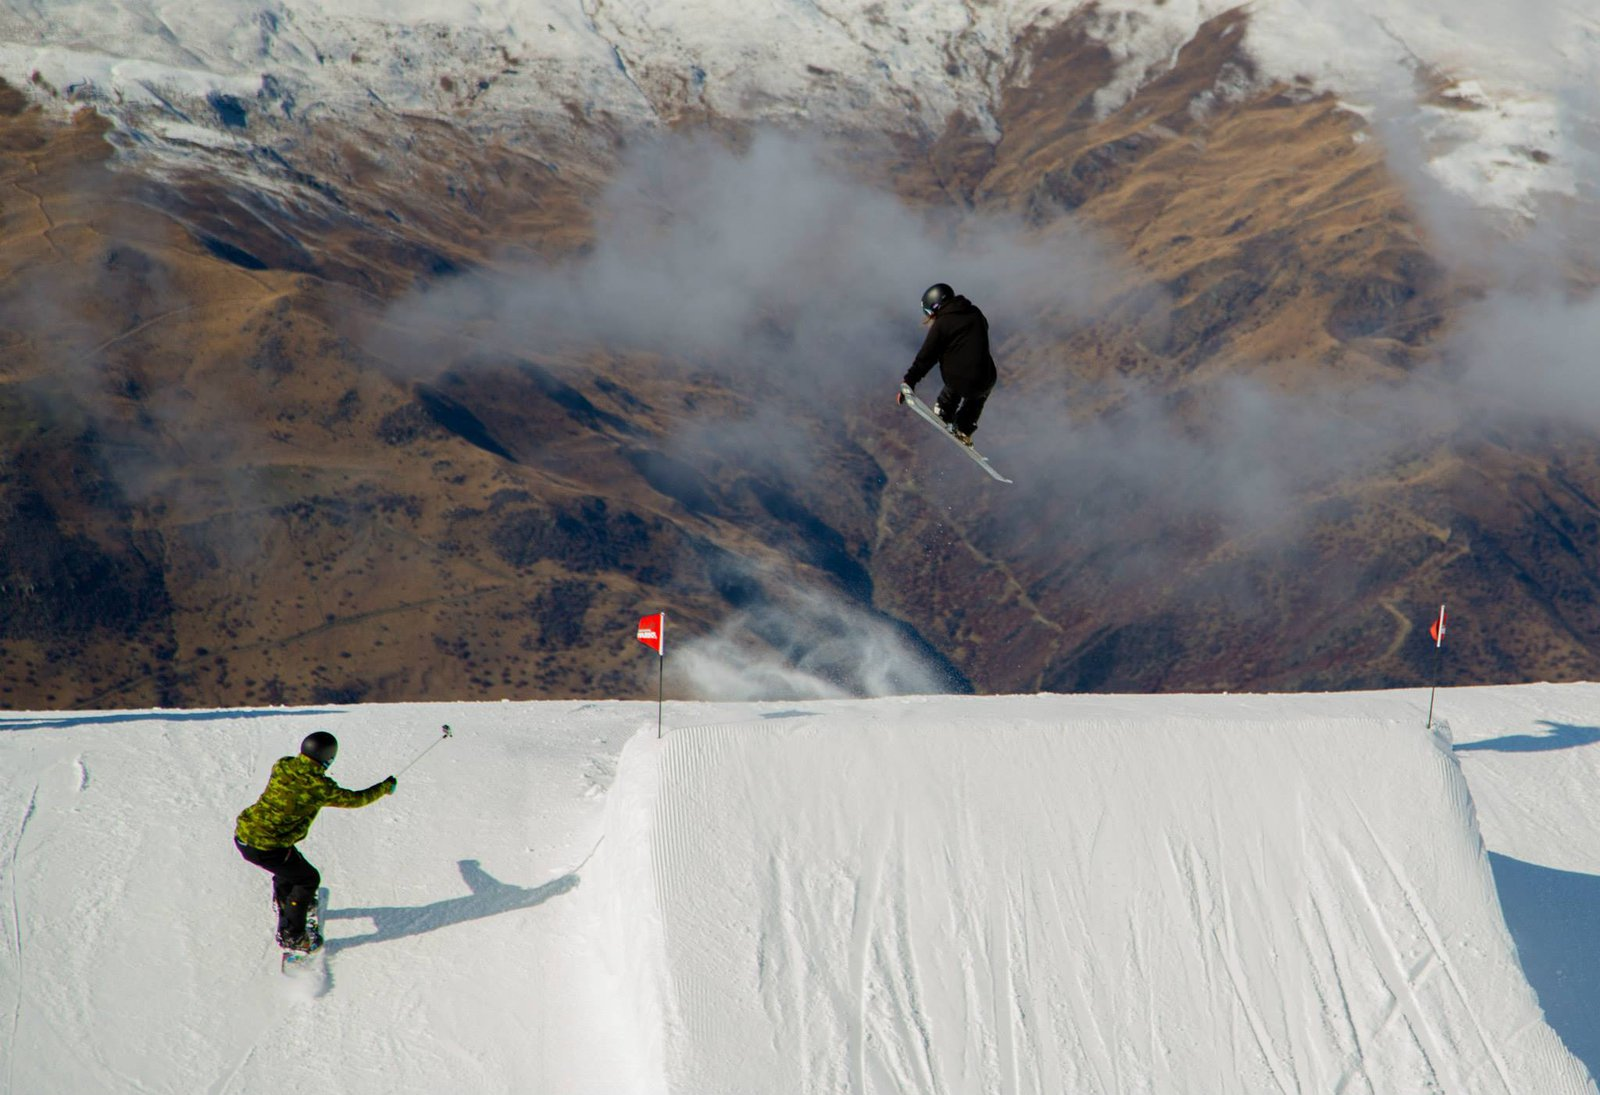 Followcam in Cardrona, NZ